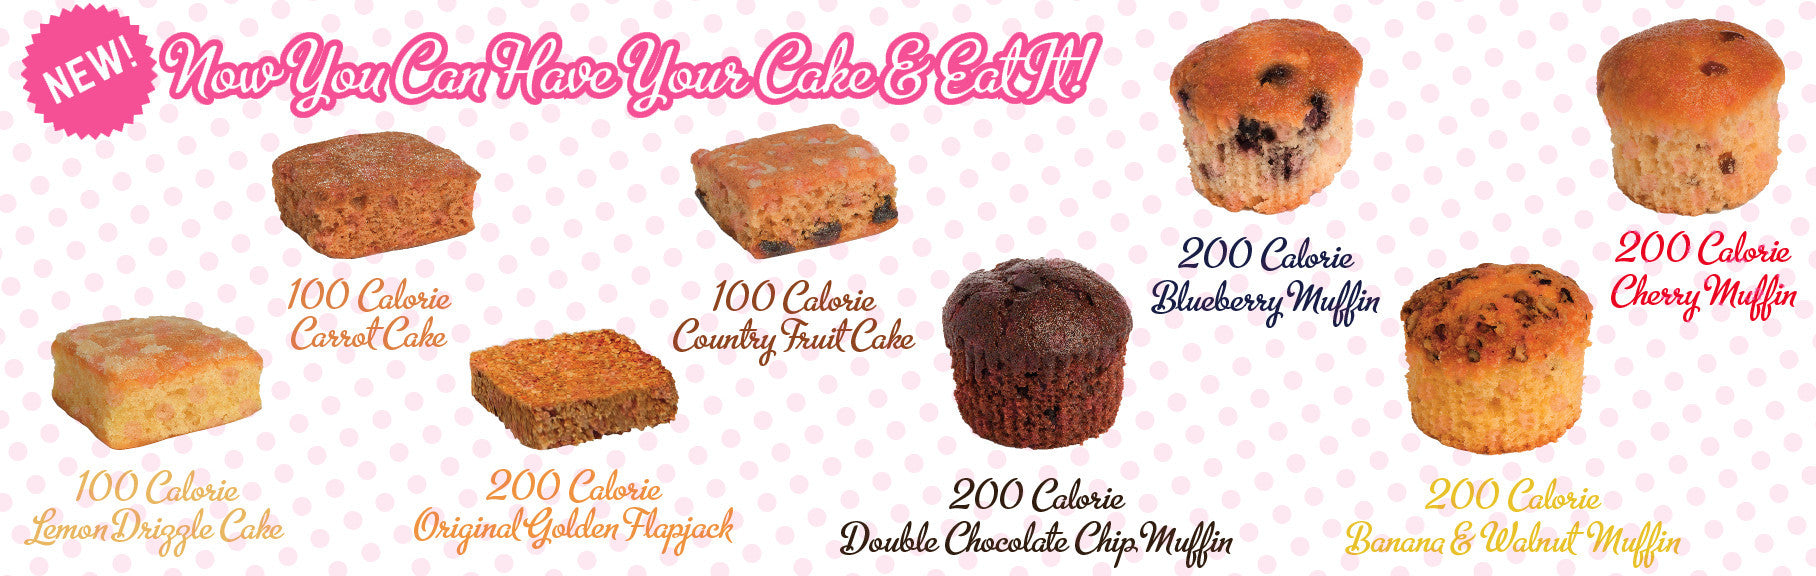 HAVE YOUR CAKE AND EAT IT! 100 AND 200 CALORIE CAKES, MUFFINS & FLAPJACKS!